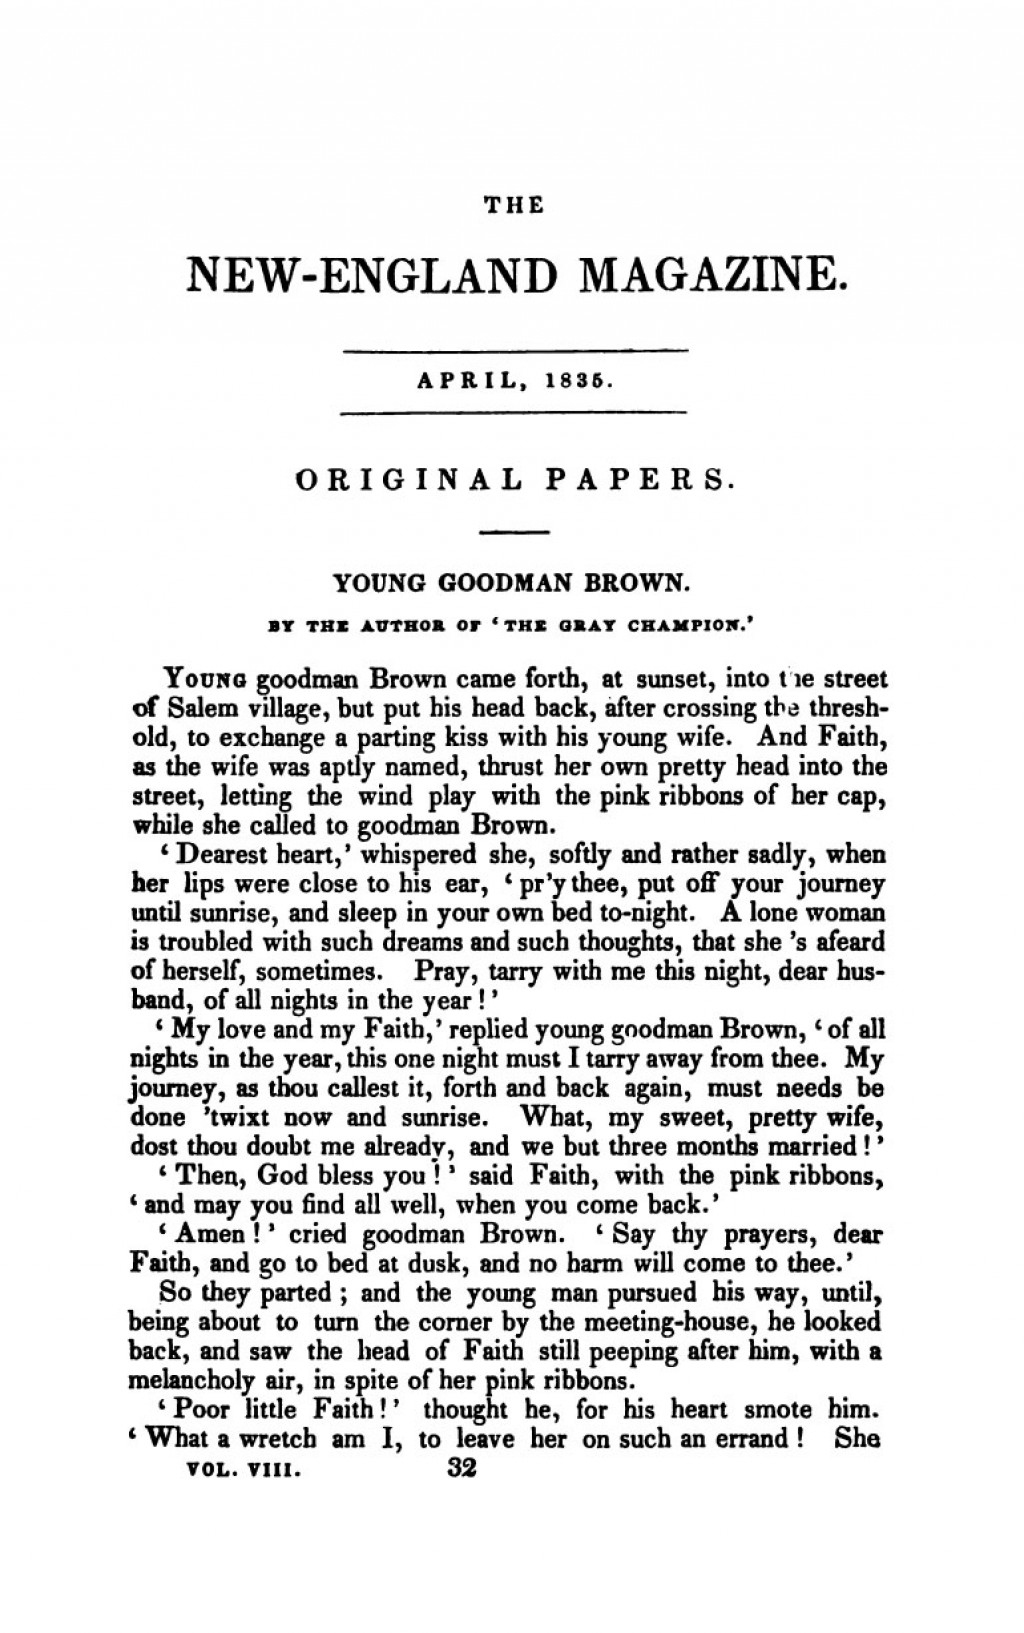 002 Young Goodman Brown Essay Example  The New England Magazine April 1835 Beautiful Writing Prompt Topics ThemeLarge